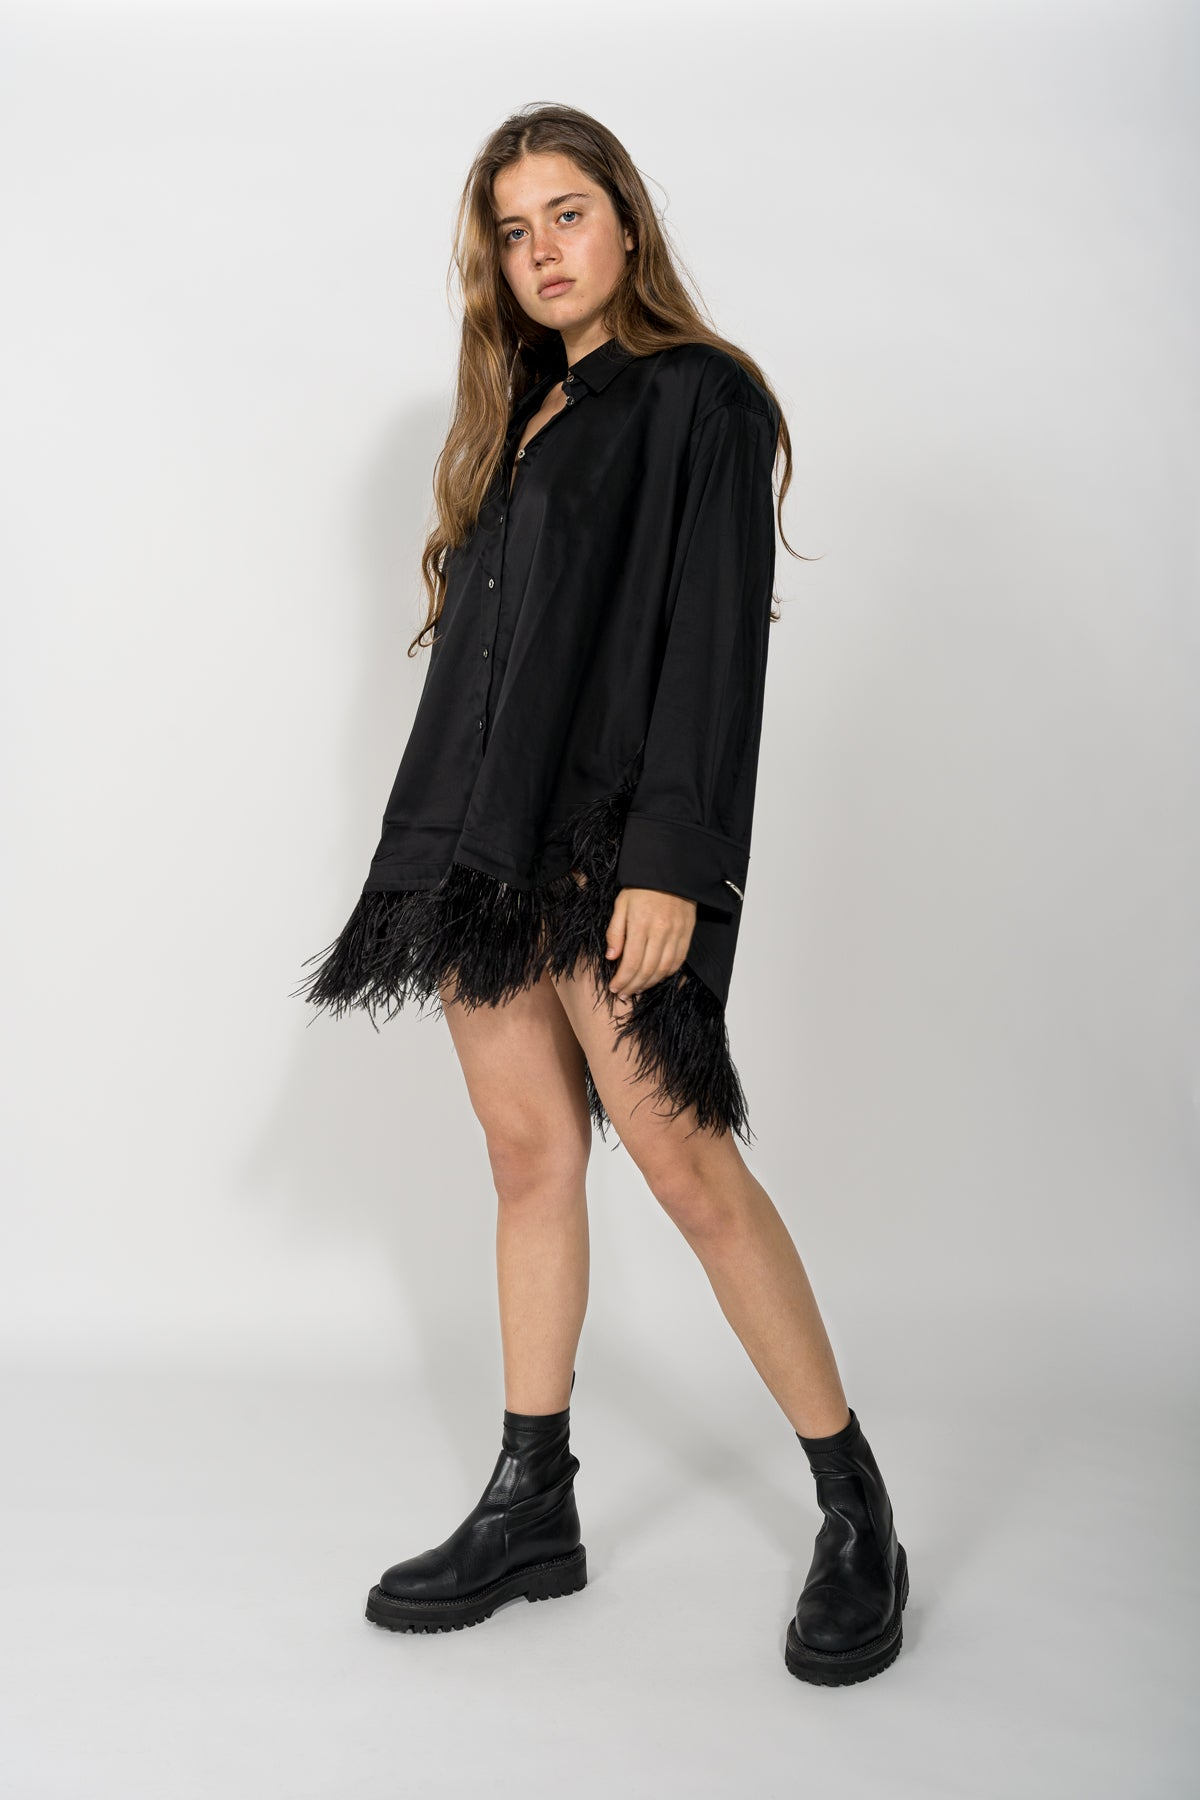 BLACK XXL SHIRT WITH FEATHERS